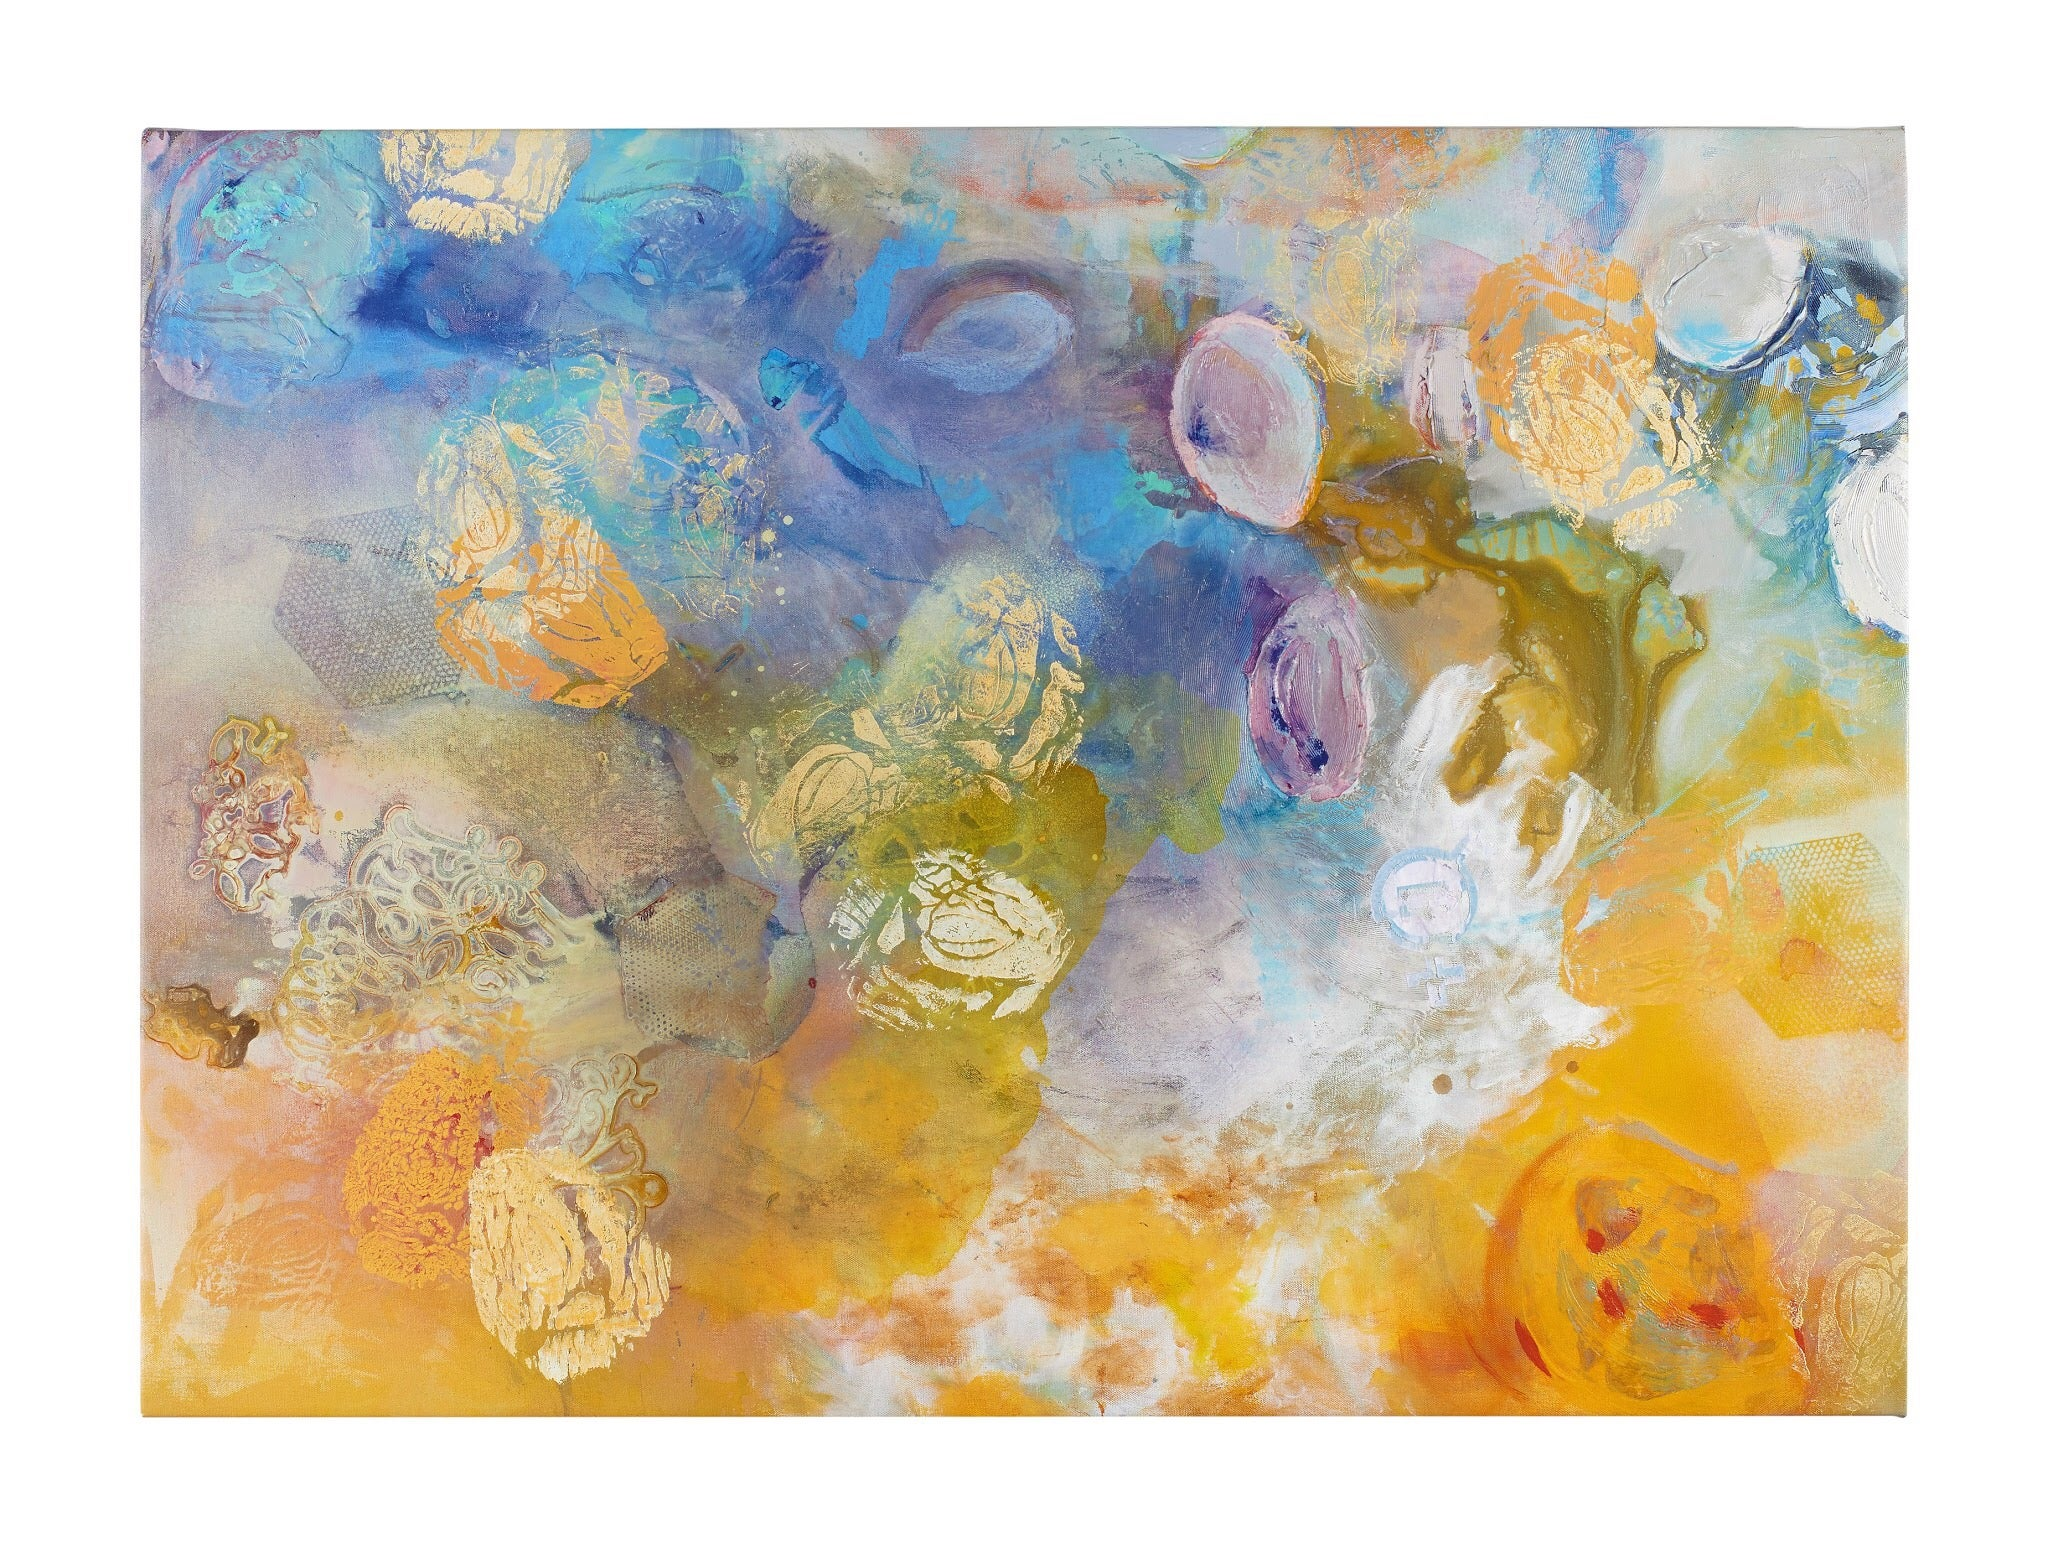 """""""Origins"""" - Beautiful Mixed Media Abstract Painting with Yellow, Blue, Orange"""